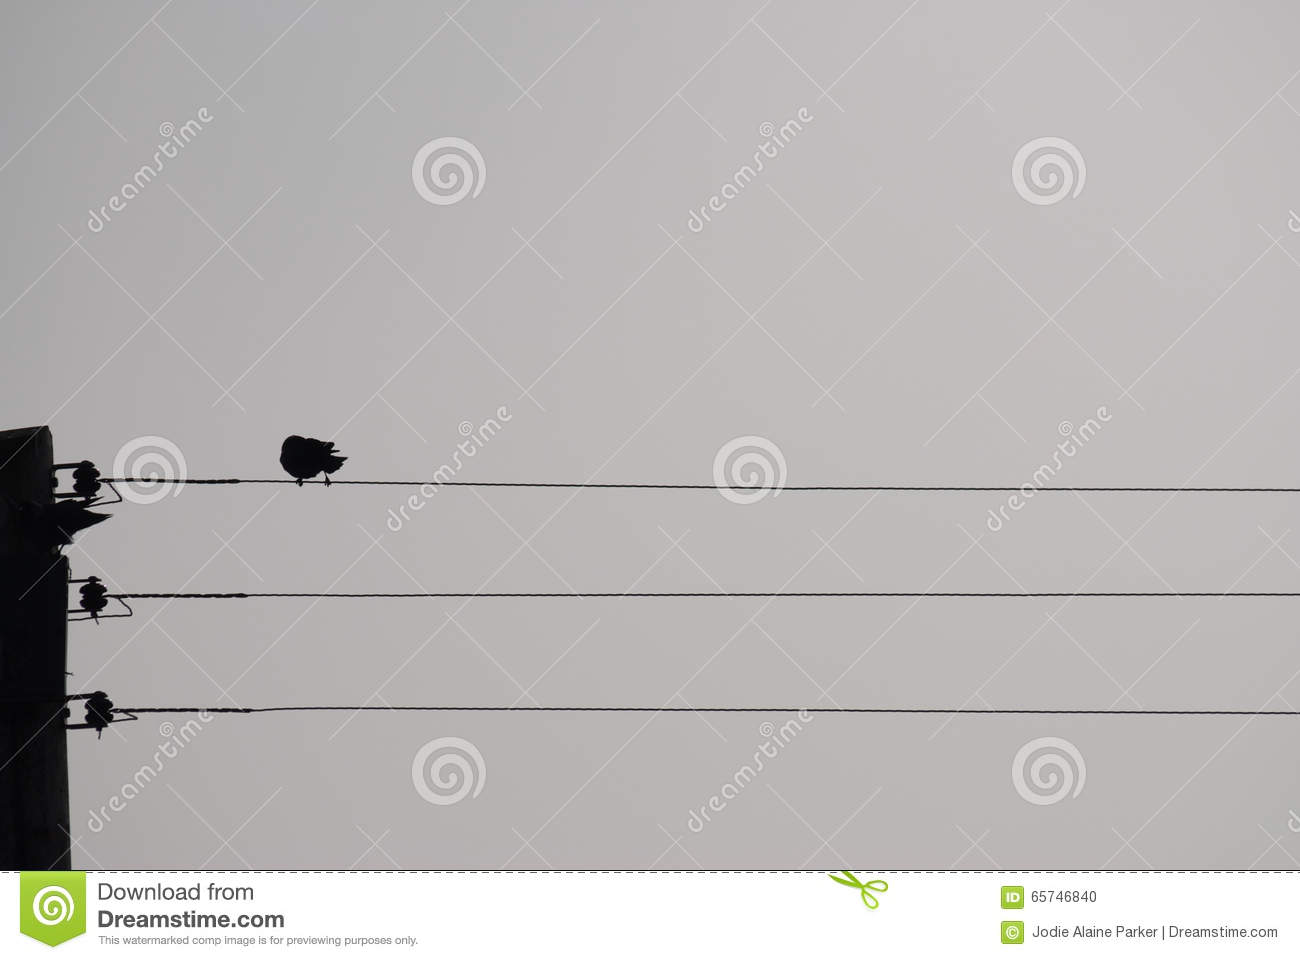 Bird On A Telephone Wire Silhouette Stock Photo - Image of nature ...